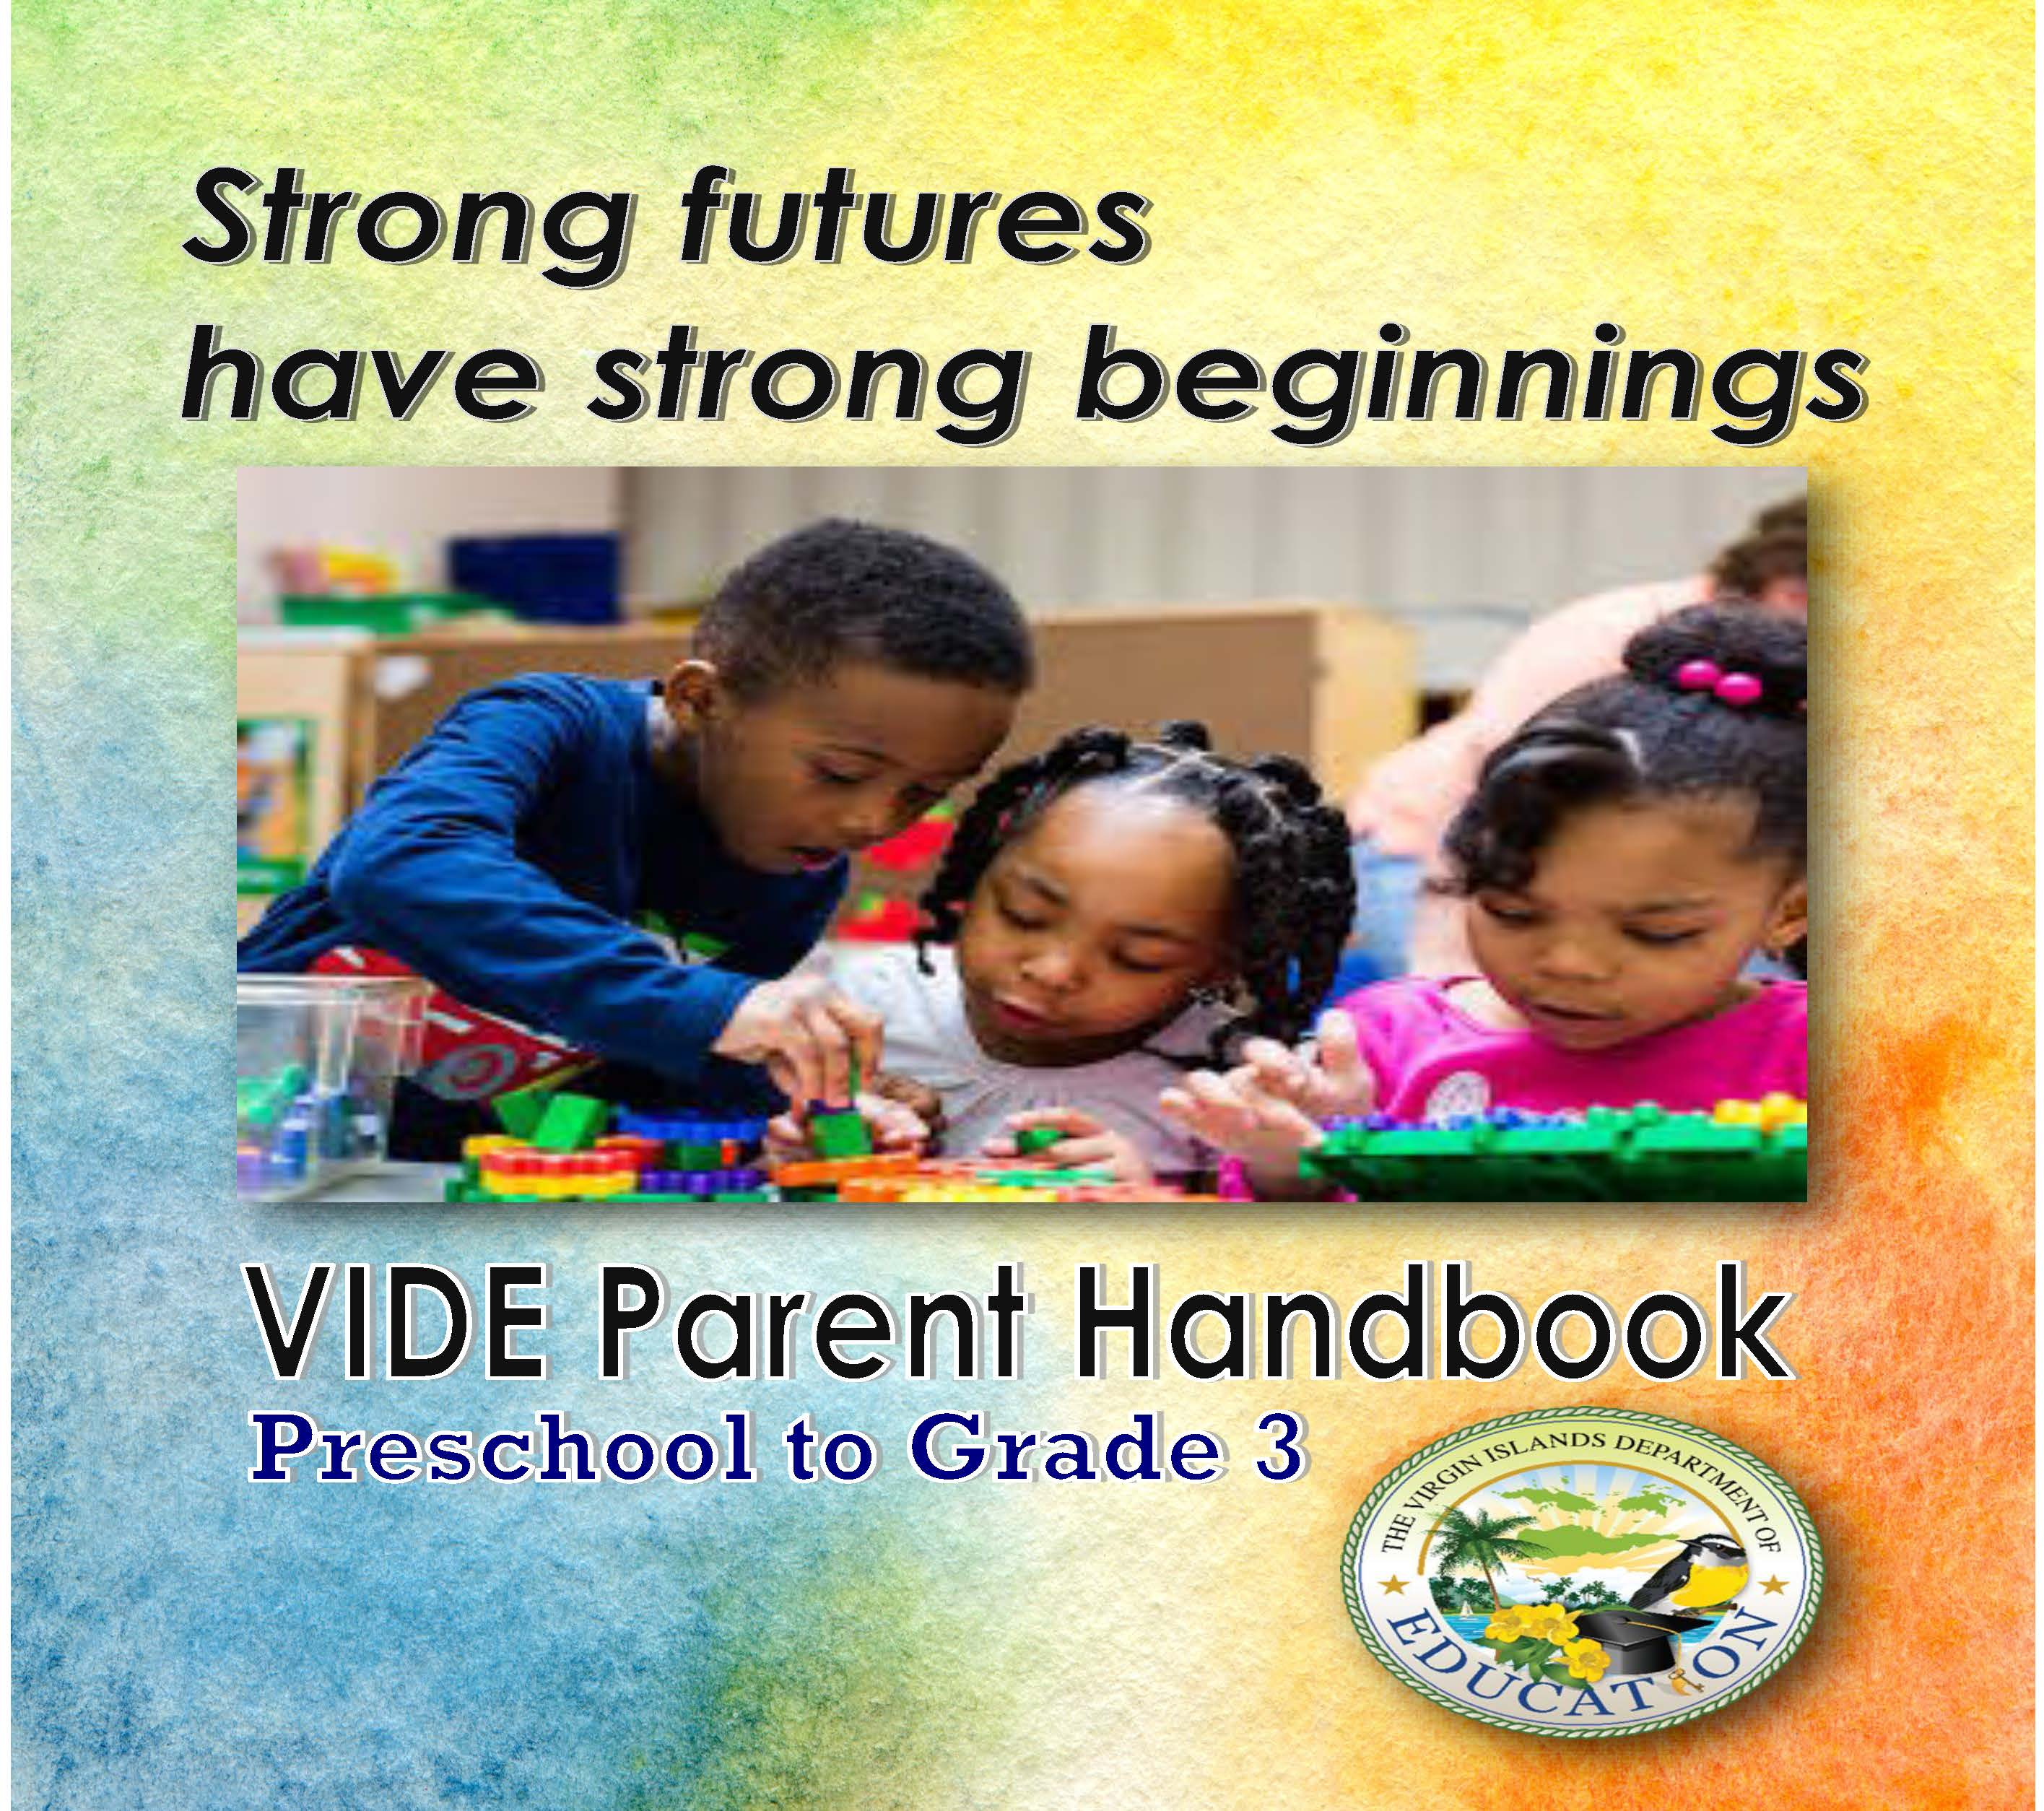 VIDE Parent Handbook: Preschool to Grade 3